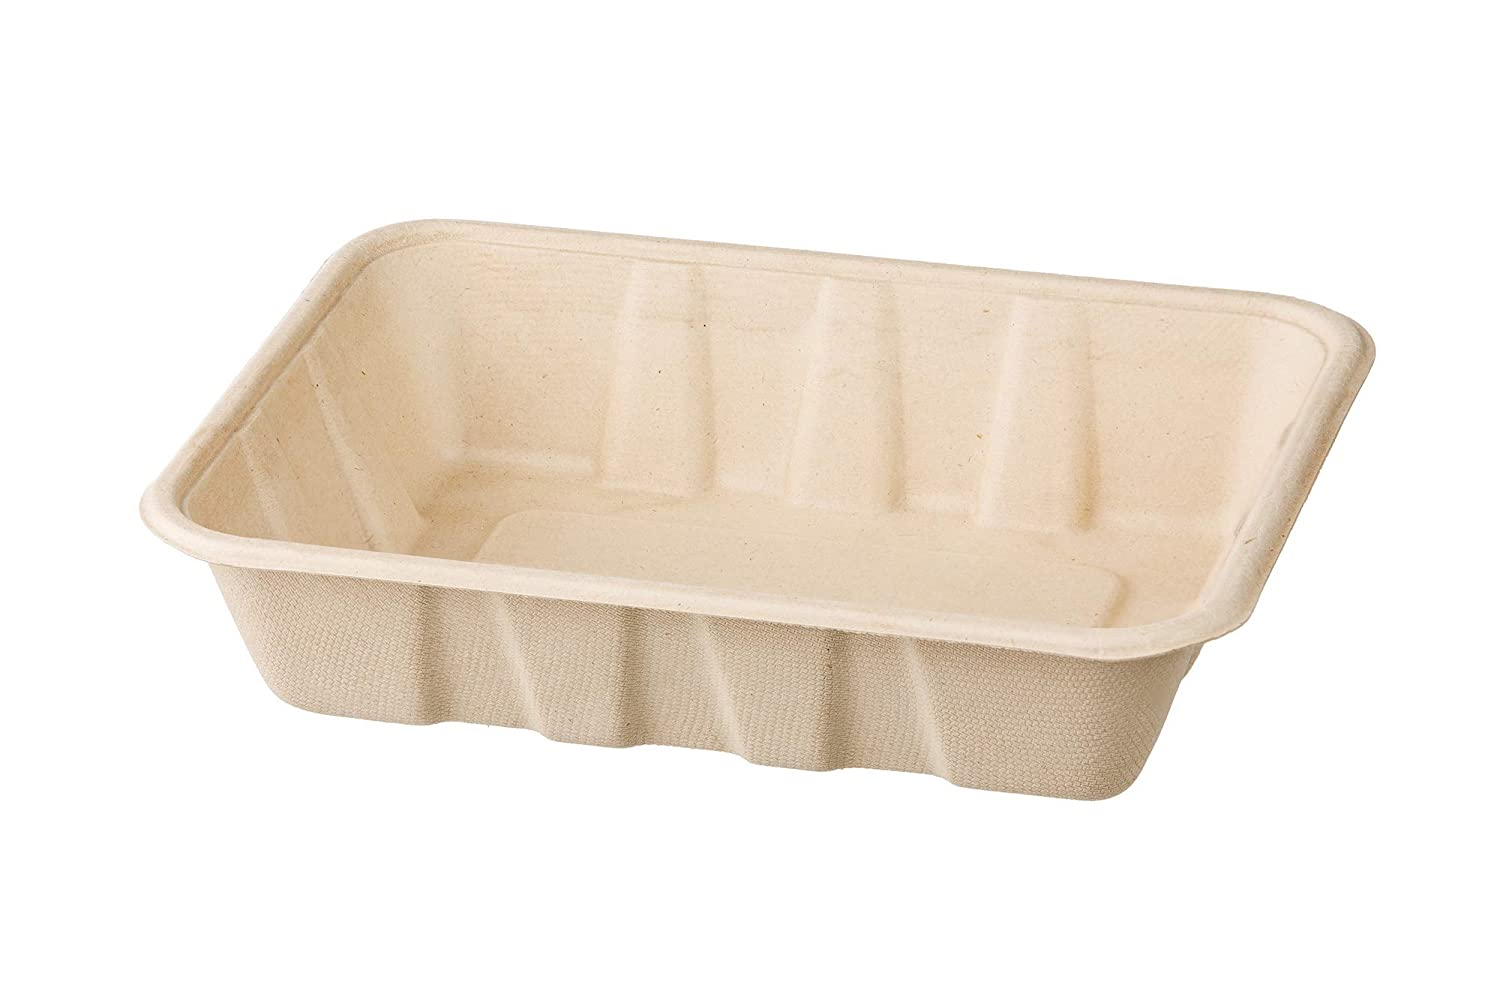 HARVEST PACK 32 oz Compostable Disposable Food Container Serving Trays, Rectangle, Made from 100% Eco-Friendly Plant Fibers [100 COUNT]